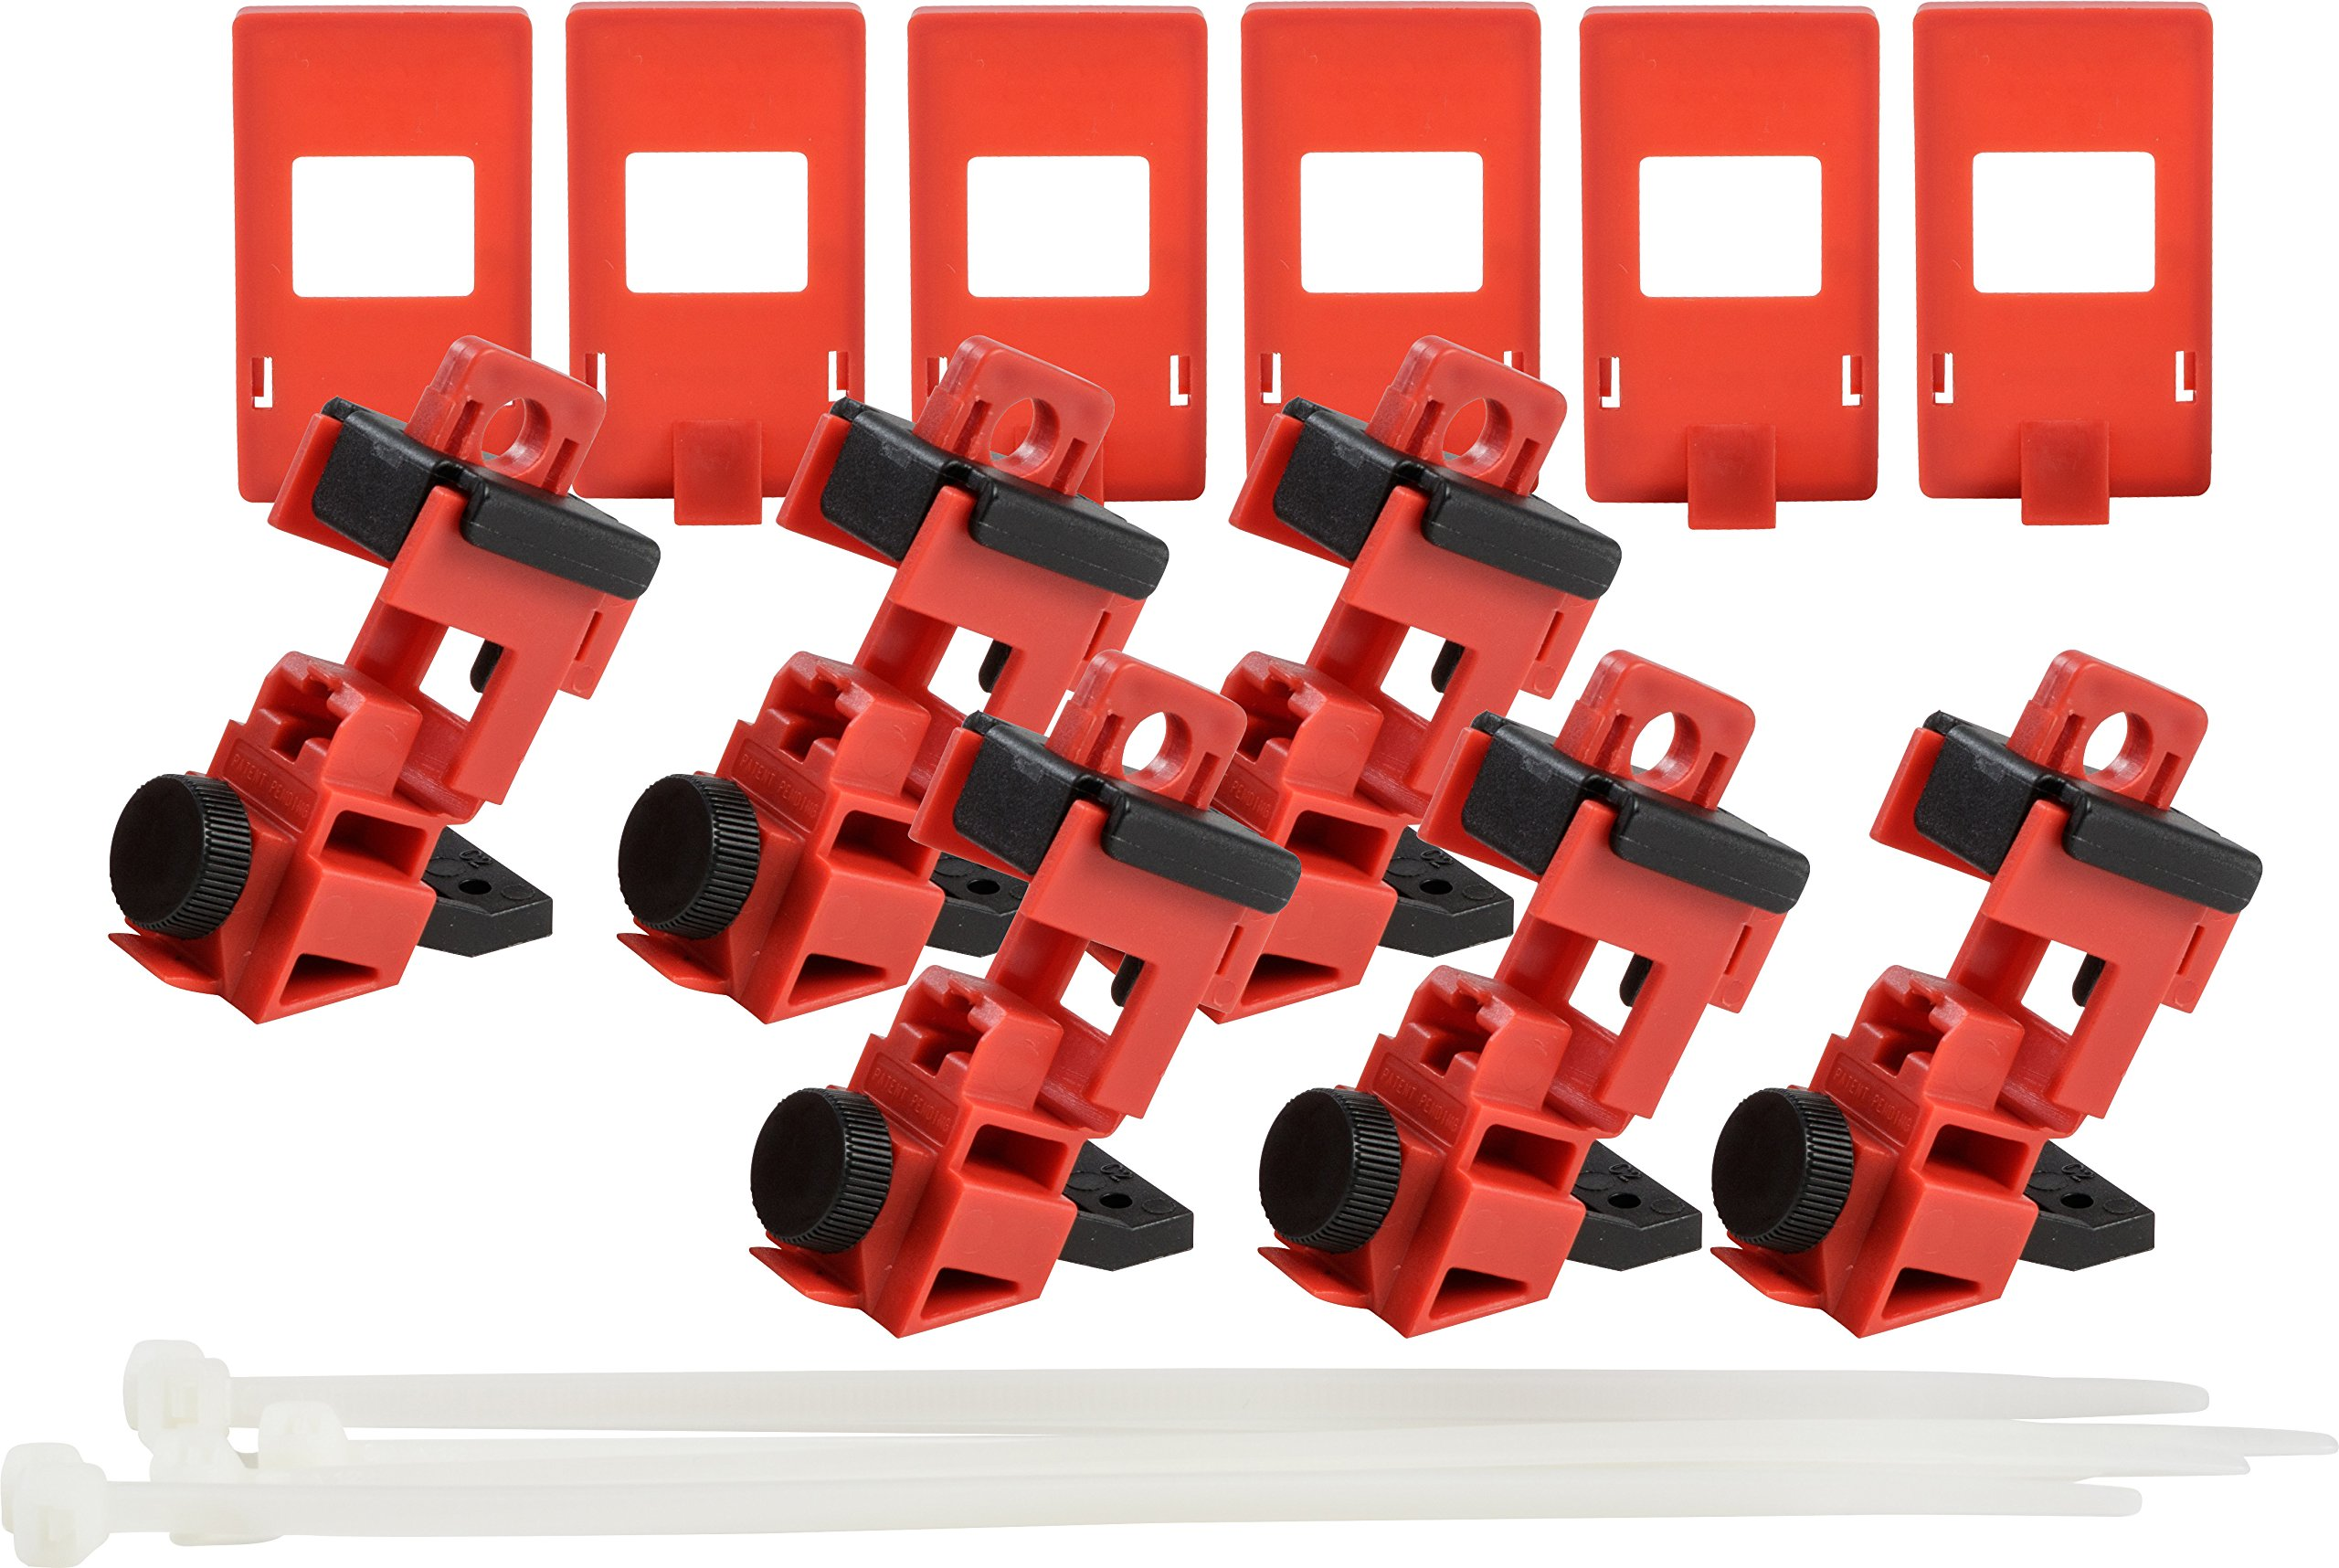 Brady Taglock Circuit Breaker Lockout Devices - 120/277 Volt Clamp-On Single-Pole Breaker Lockout Device with Detachable Cleat, No Lock Needed - Red - 148698 (Pack of 6)